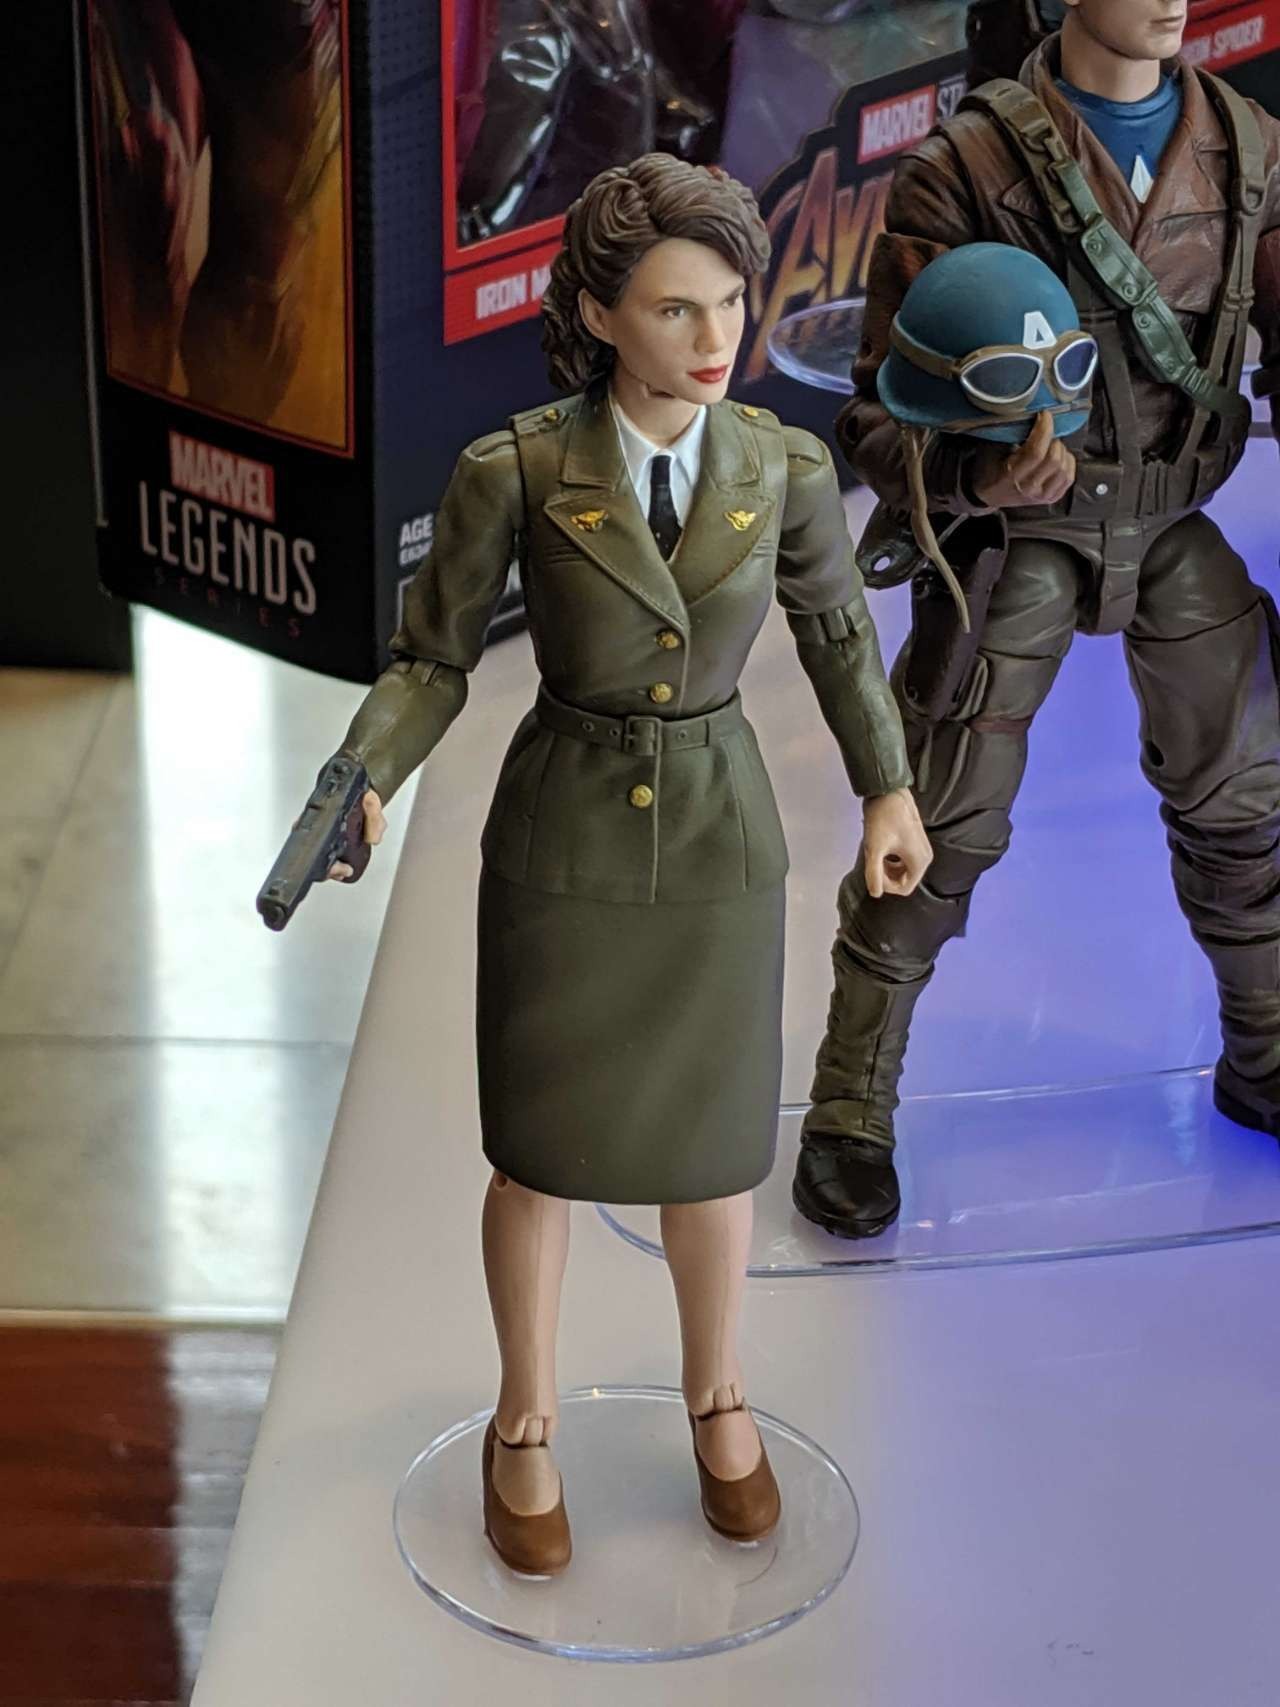 peggy-carter-marvel-legends